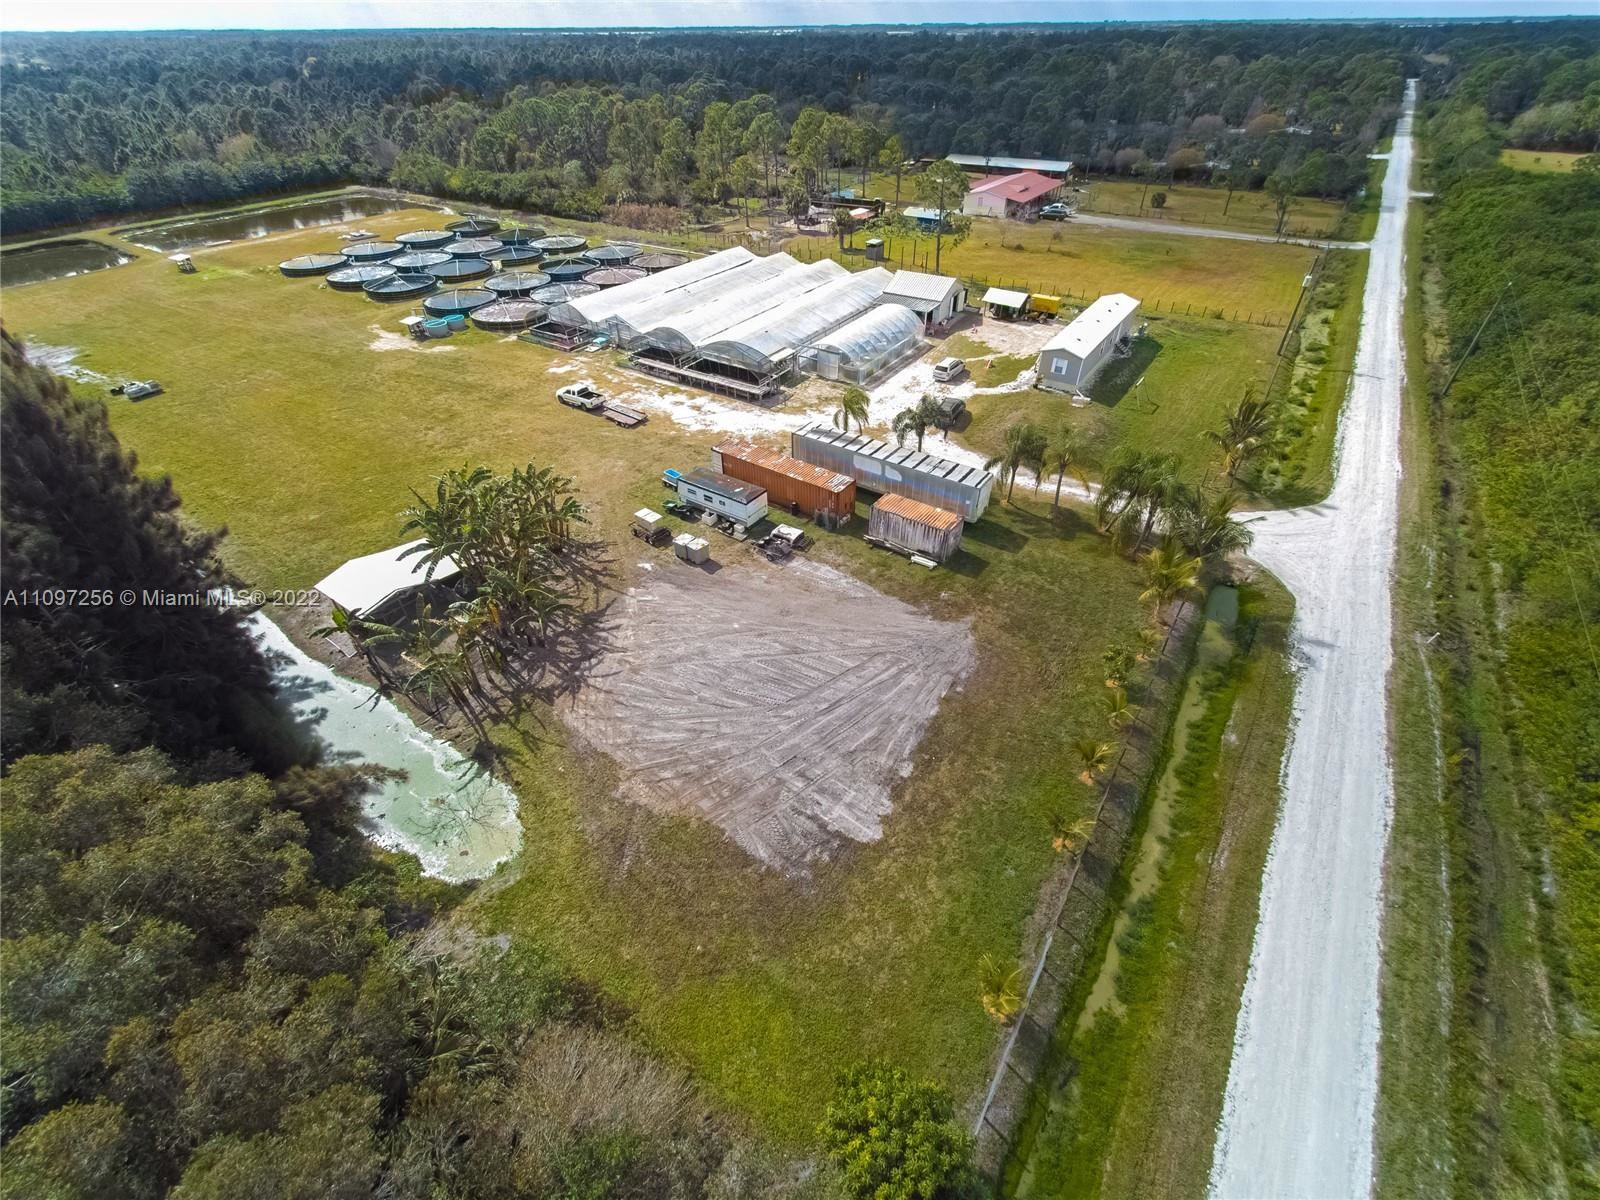 13706 Murcott Ave., Clewiston, FL 33440 - #: A11097256